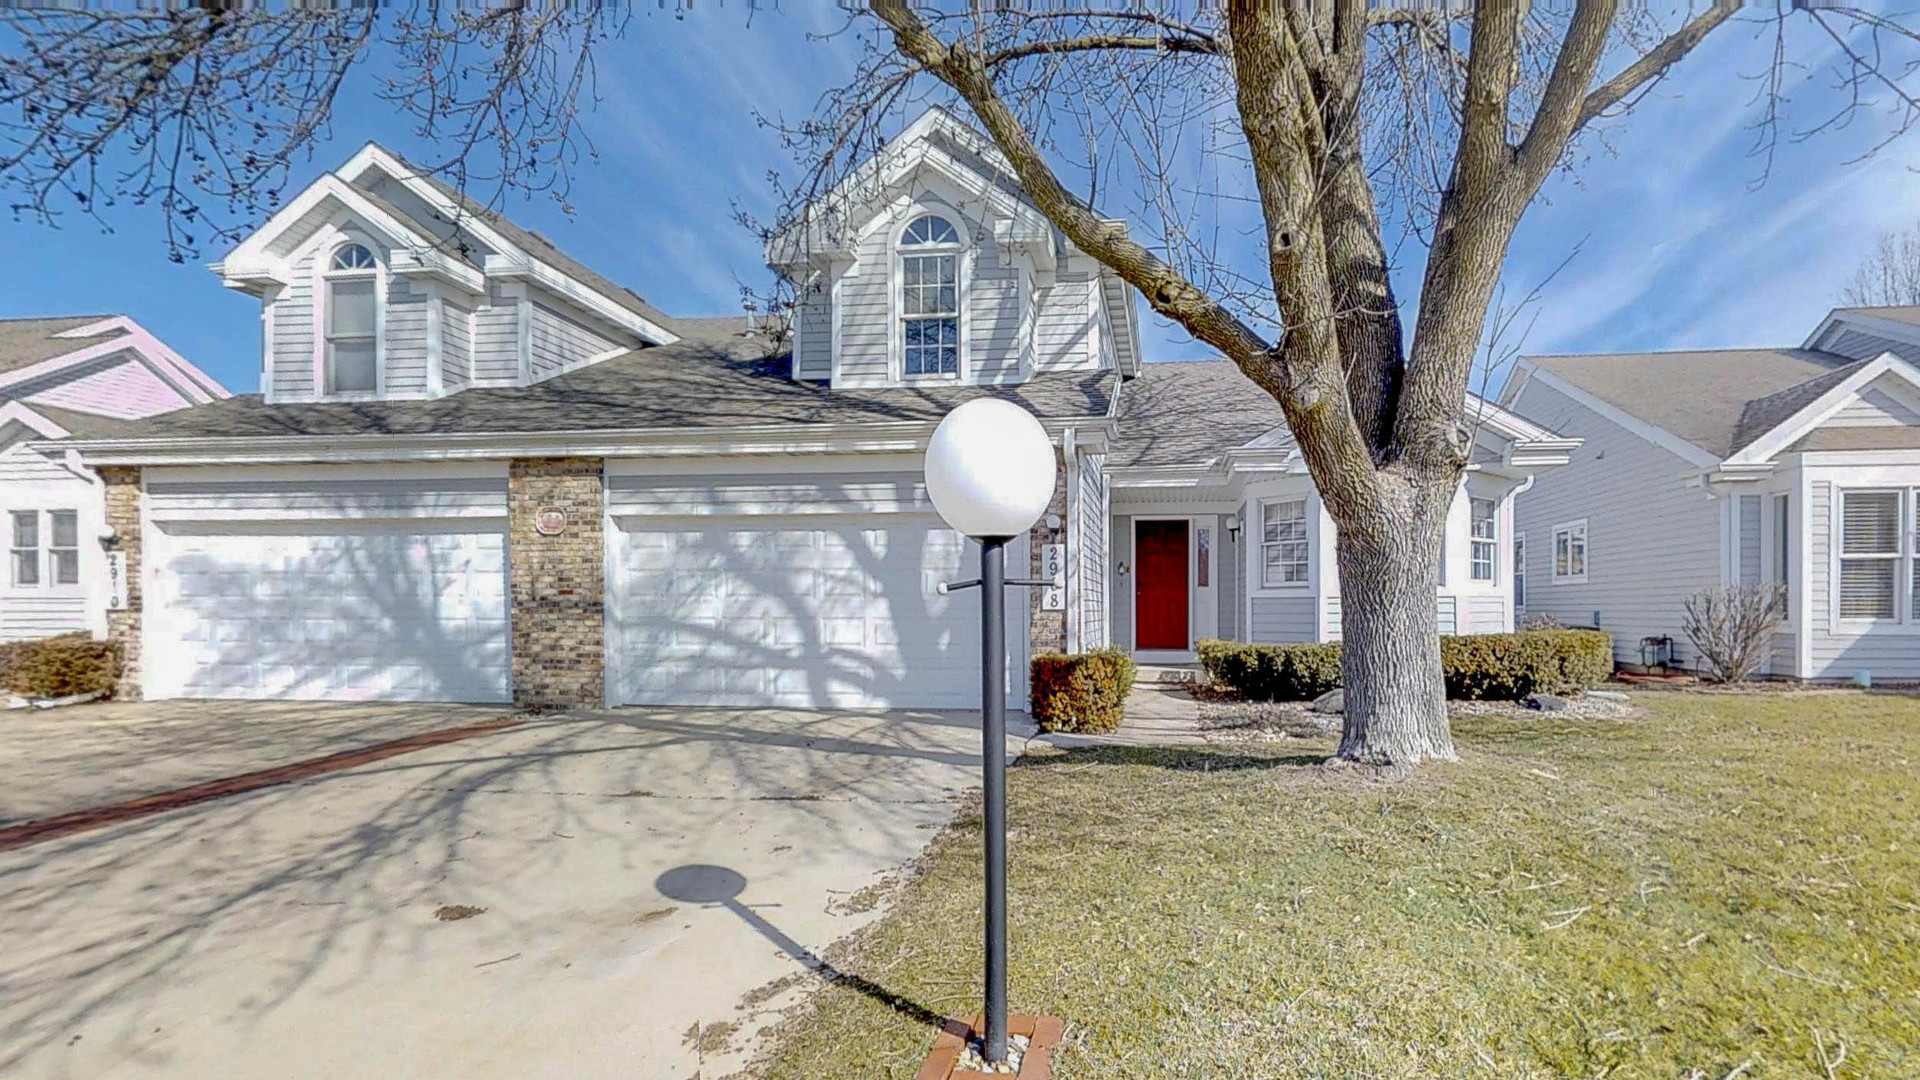 2908 Heathwood Court, Champaign in Champaign County, IL 61822 Home for Sale